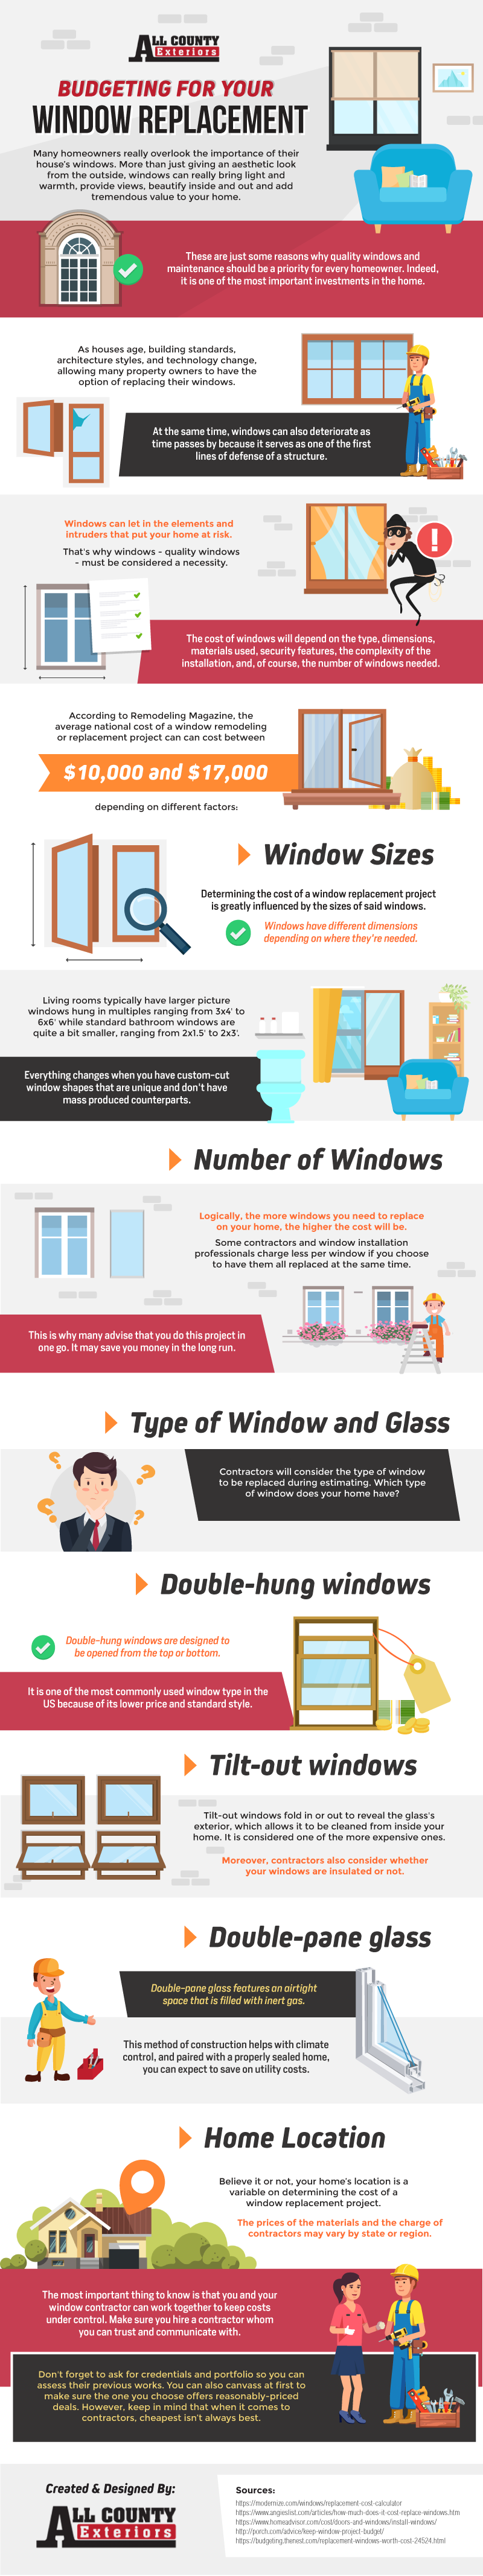 Window Replacement: Your Comprehensive Guide - Infographic